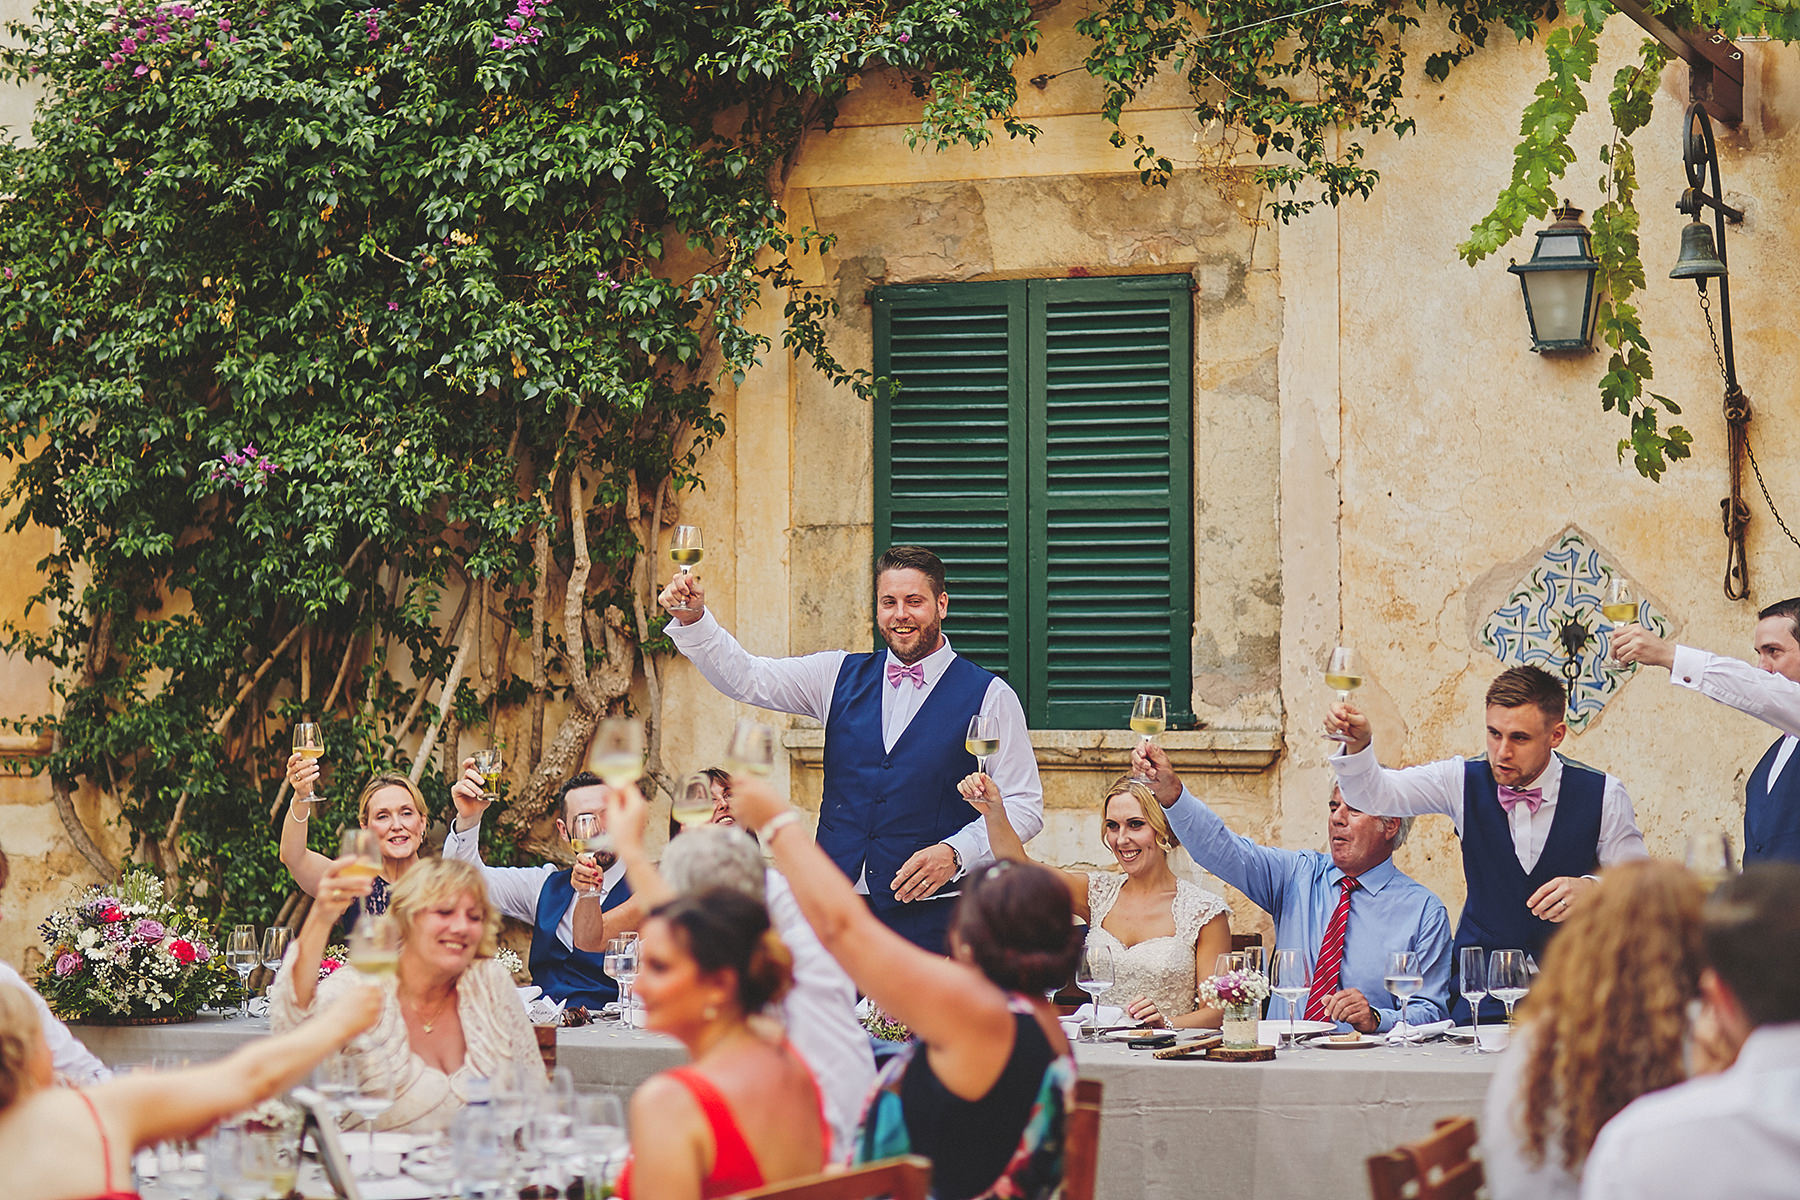 352 - Destination wedding in a magical Mallorca